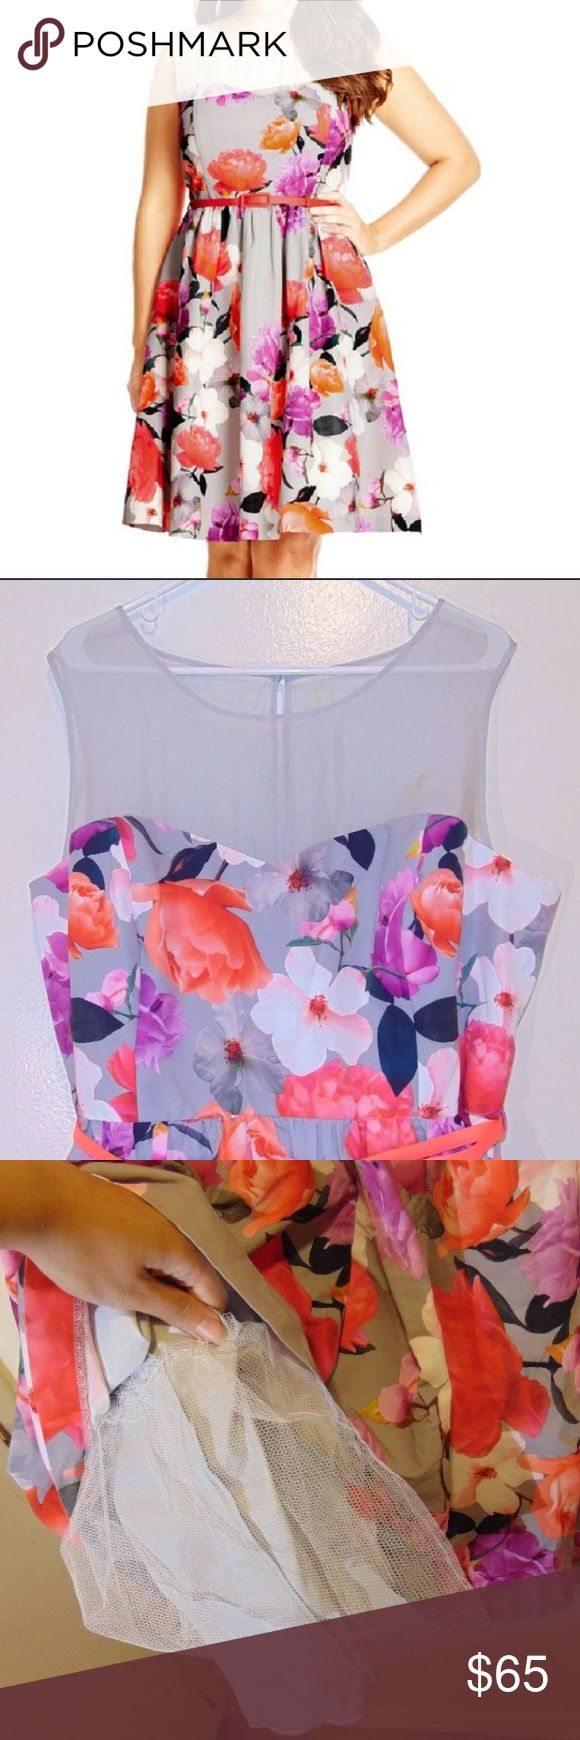 HP- 2/7 🎉🎉🎉 City Chic Floral Dress with Belt Super cute dress for Easter/Spring! Brand new w tags! size 20 in US sizing.    Features Include: - Illusion sweetheart neckline with sheer insert - Detachable pleather belt  - Knee fit and flare skirt  - Invisible centre back zipper with hook and eye fastening  - Peekaboo back feature with single button fastening - Tulle underskirt for extra volume  - Satin feel lining   MAIN: 100% POLYESTER  BODICE LINING: 98% POLYESTER 2% ELASTANE  SKIRT…